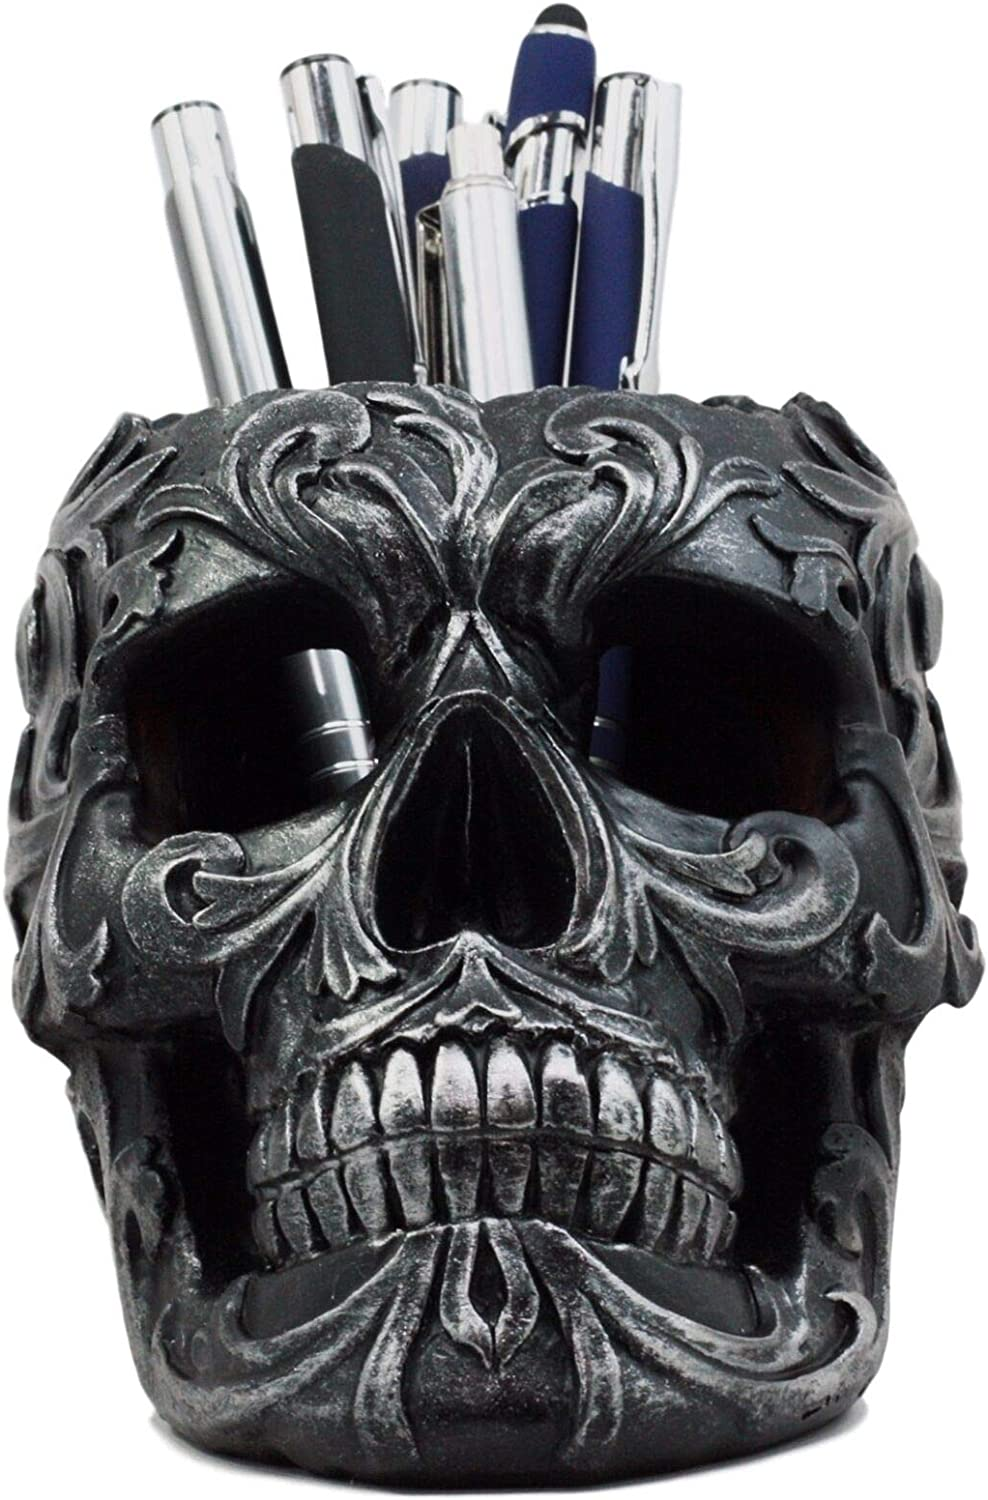 "Ebros Gift Tribal Tattoo Floral Skull Pen Holder Figurine 5.75""L Office Desktop Ossuary Skulls Decor Cranium Skeleton Head Stationery Holder As Halloween Macabre Graveyard Spooky Decorative Statue"